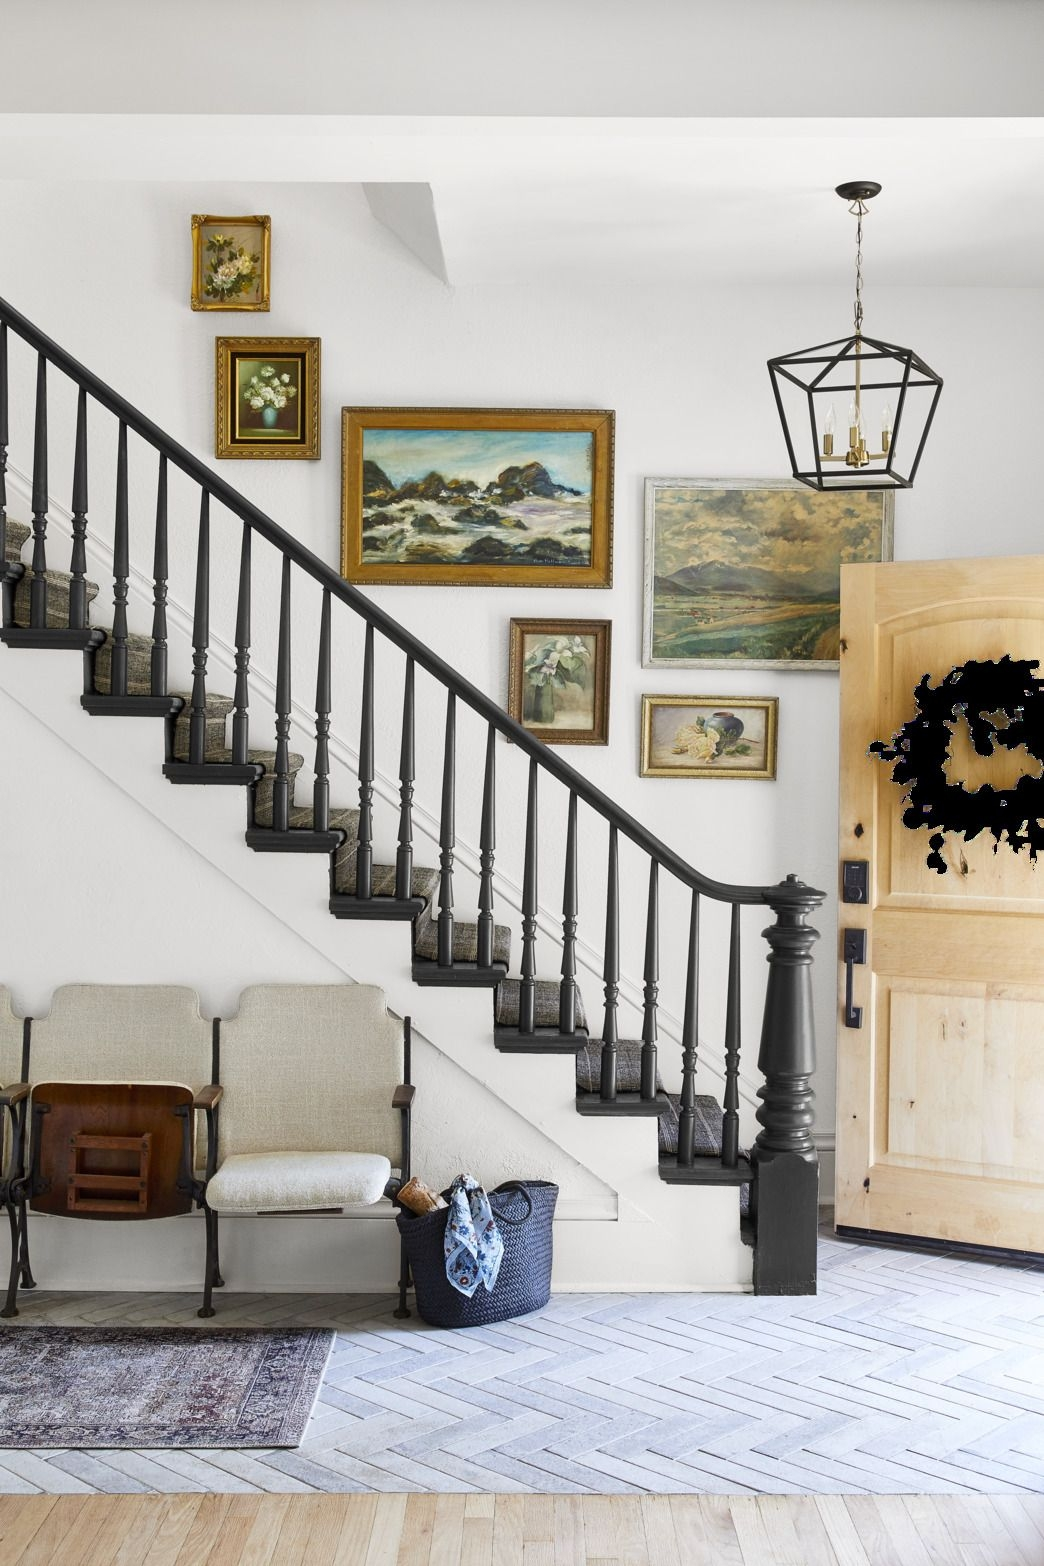 55 Best Staircase Ideas Top Ways To Decorate A Stairway | Unique Stairs For Small Spaces | Mini | Small Area | Ladder | Stairway | Loft